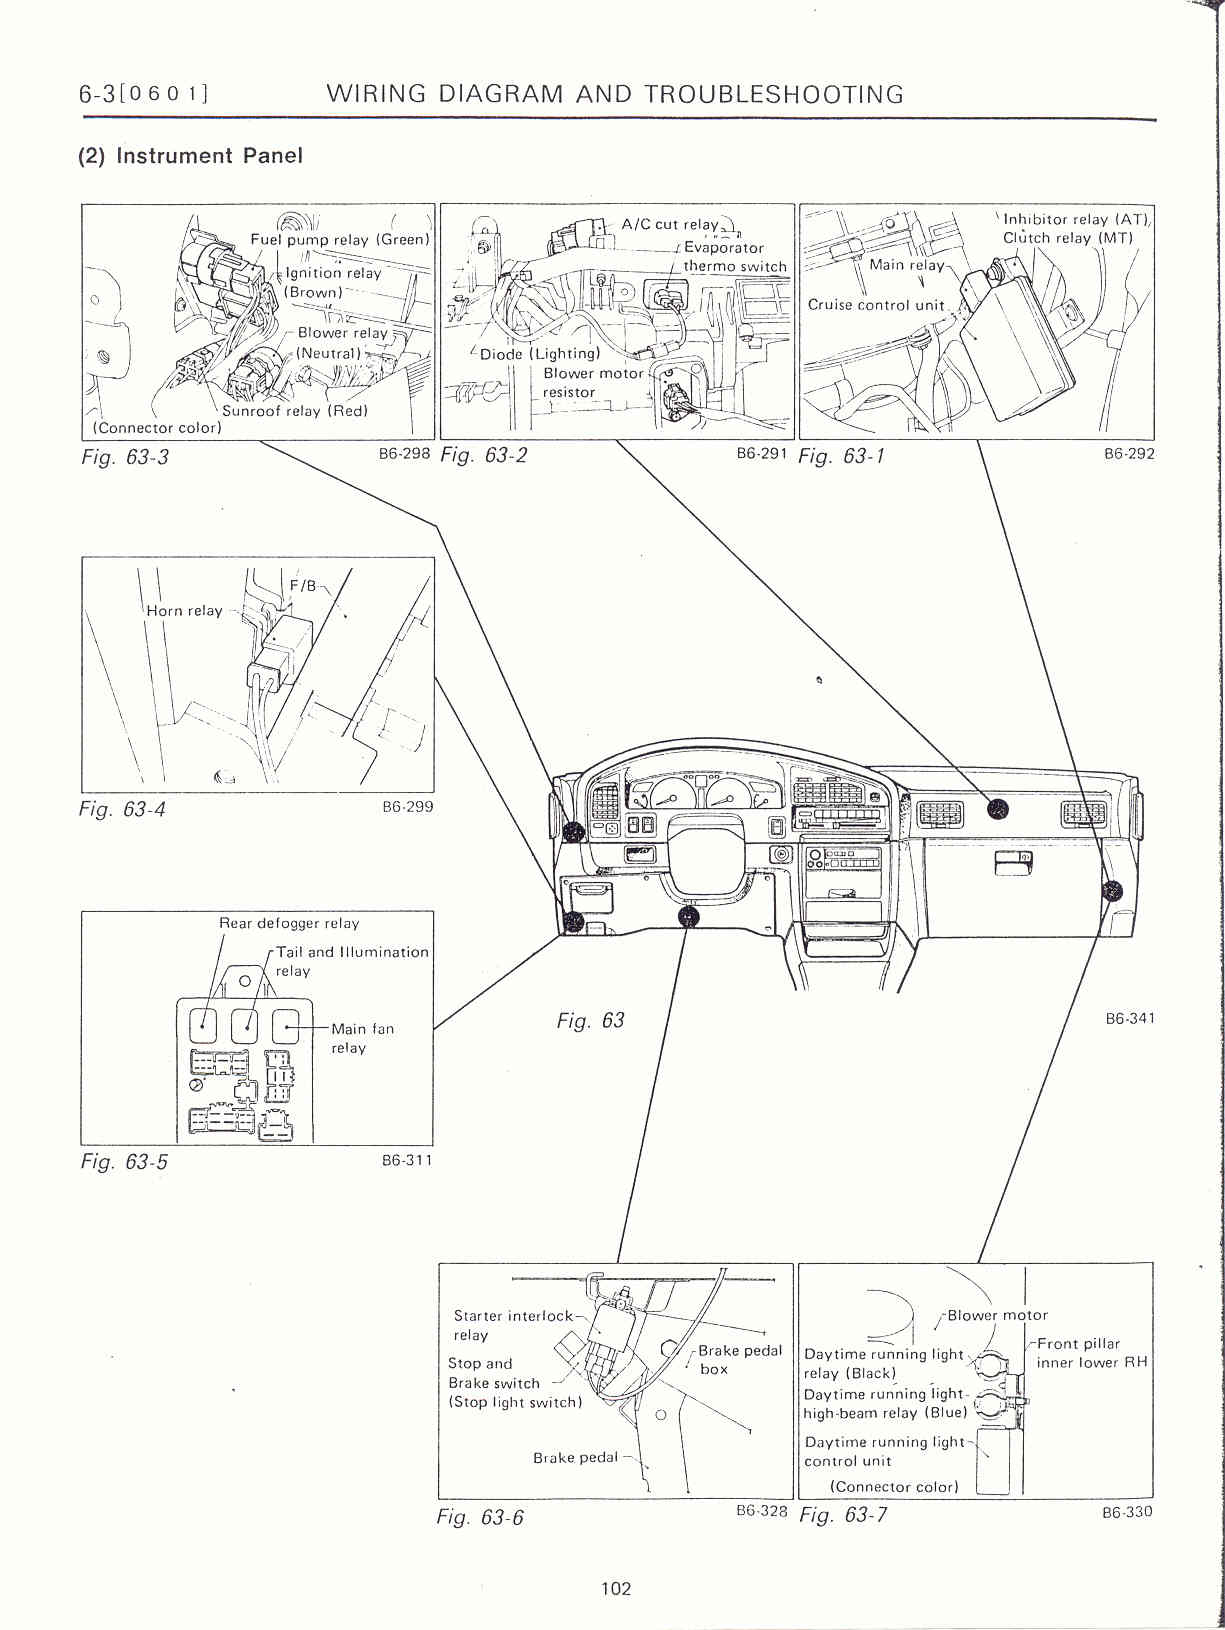 Cool subaru impreza wiring diagram contemporary the best